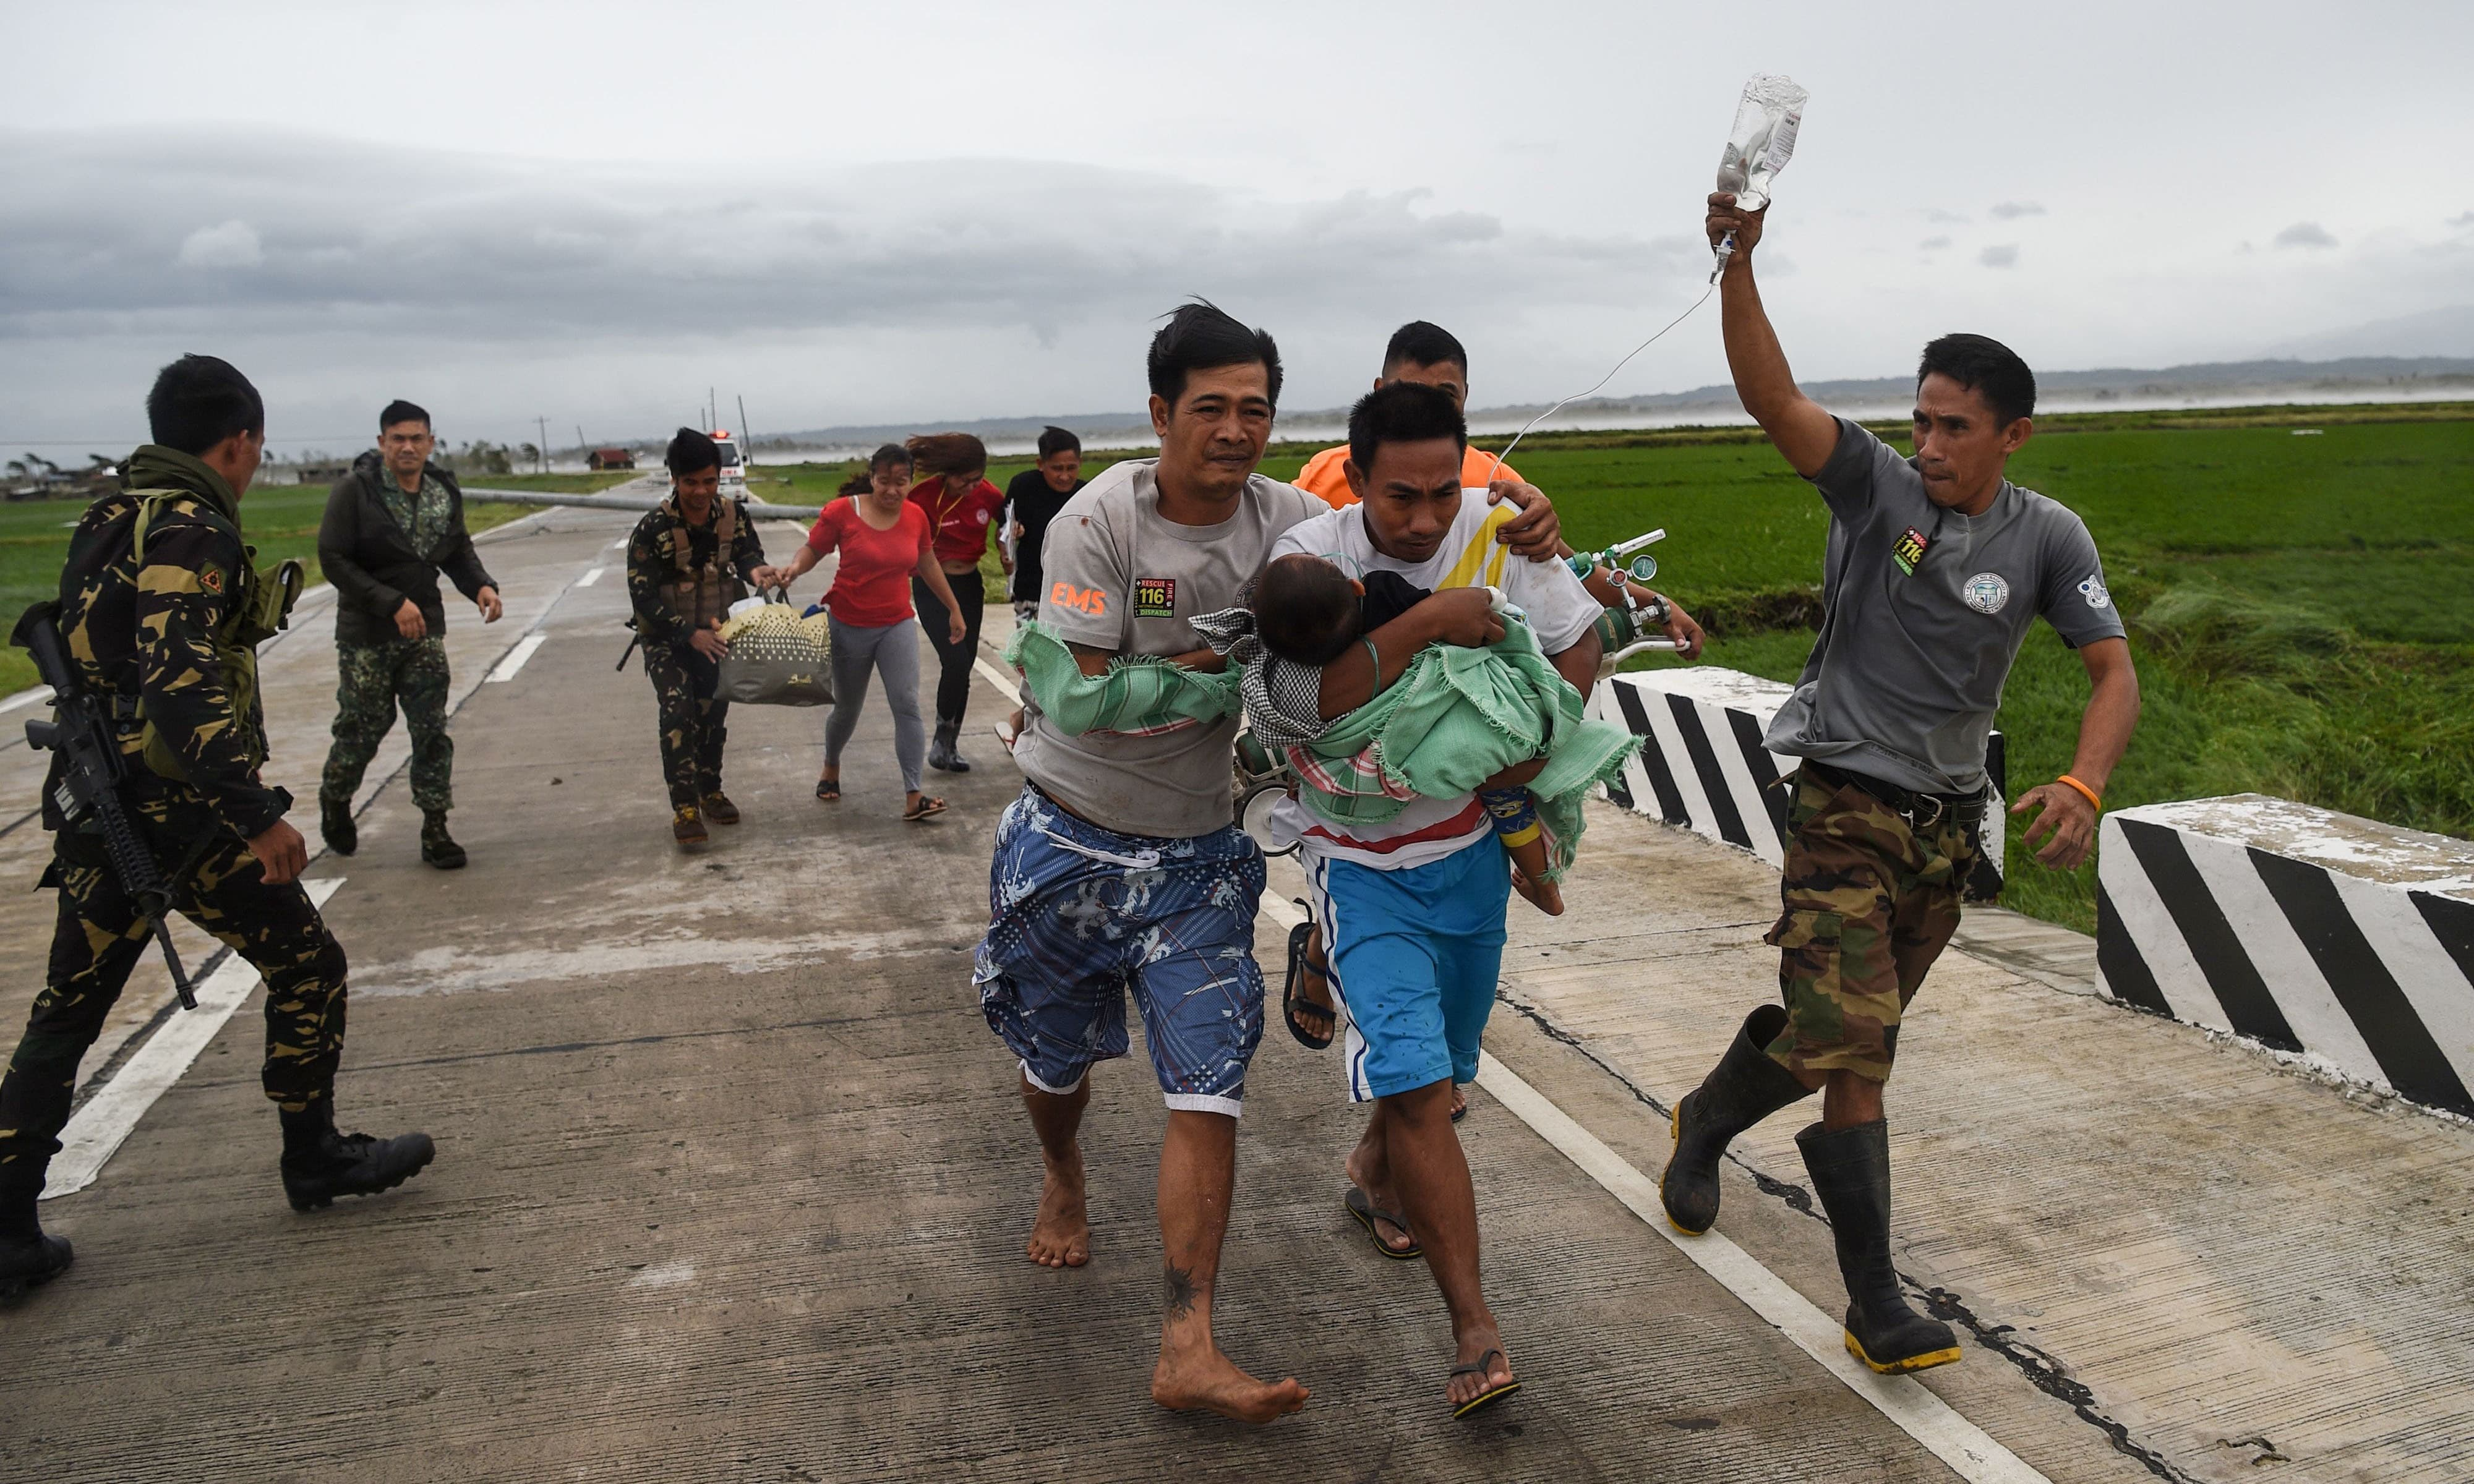 Philippine soldiers assist a family carrying their sick child to a waiting government vehicle after their ambulance failed to make it through a road blocked with fallen tree debris and electric posts toppled by strong winds from Super Typhoon Mangkhut in Baggao town, Cagayan province. — AFP